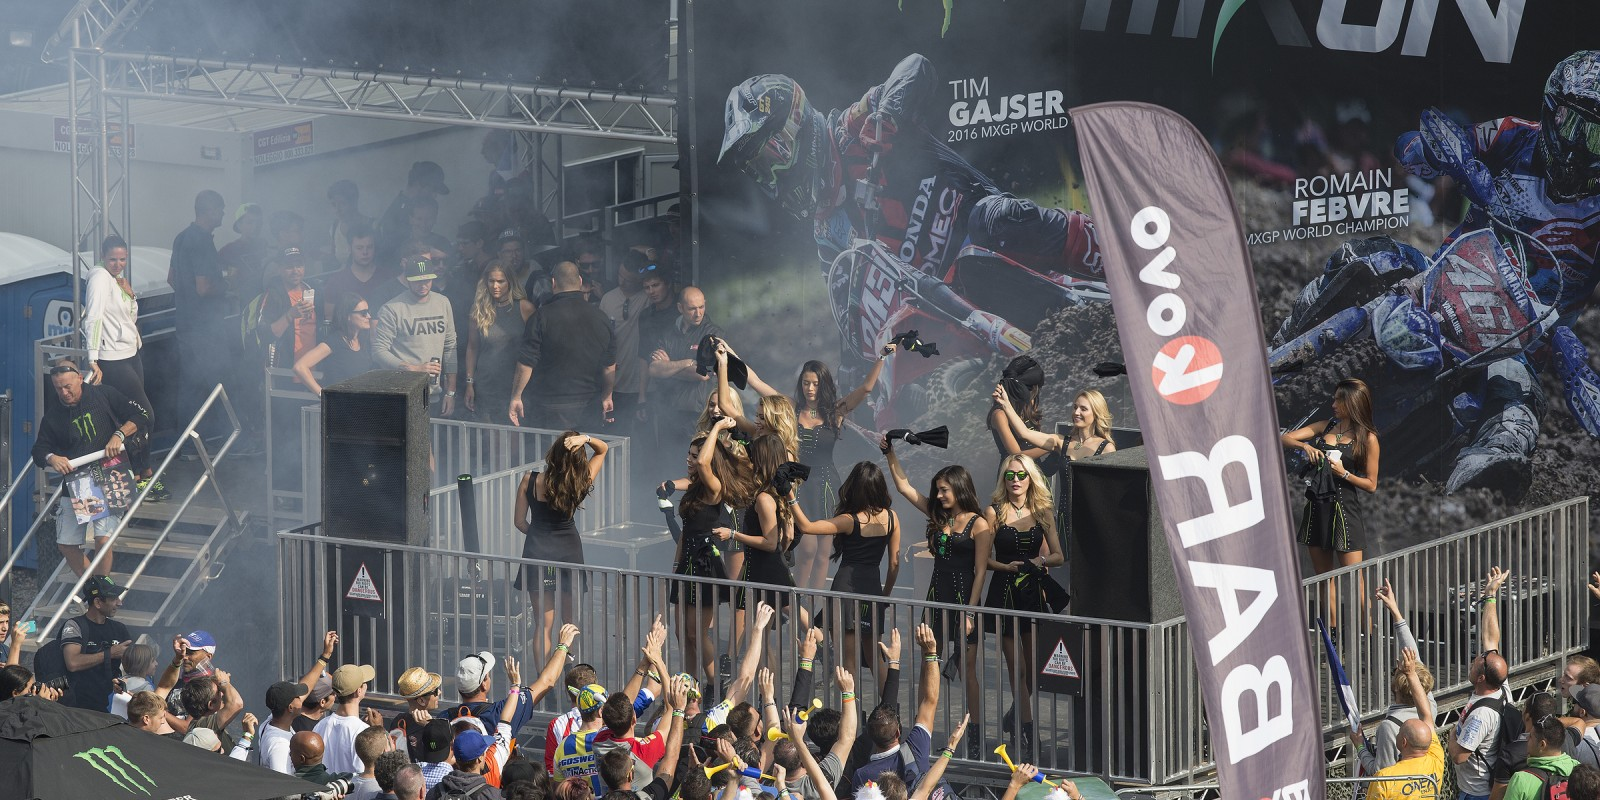 Photos from Saturday at Motorcross of Nations in Maggiora, Italy